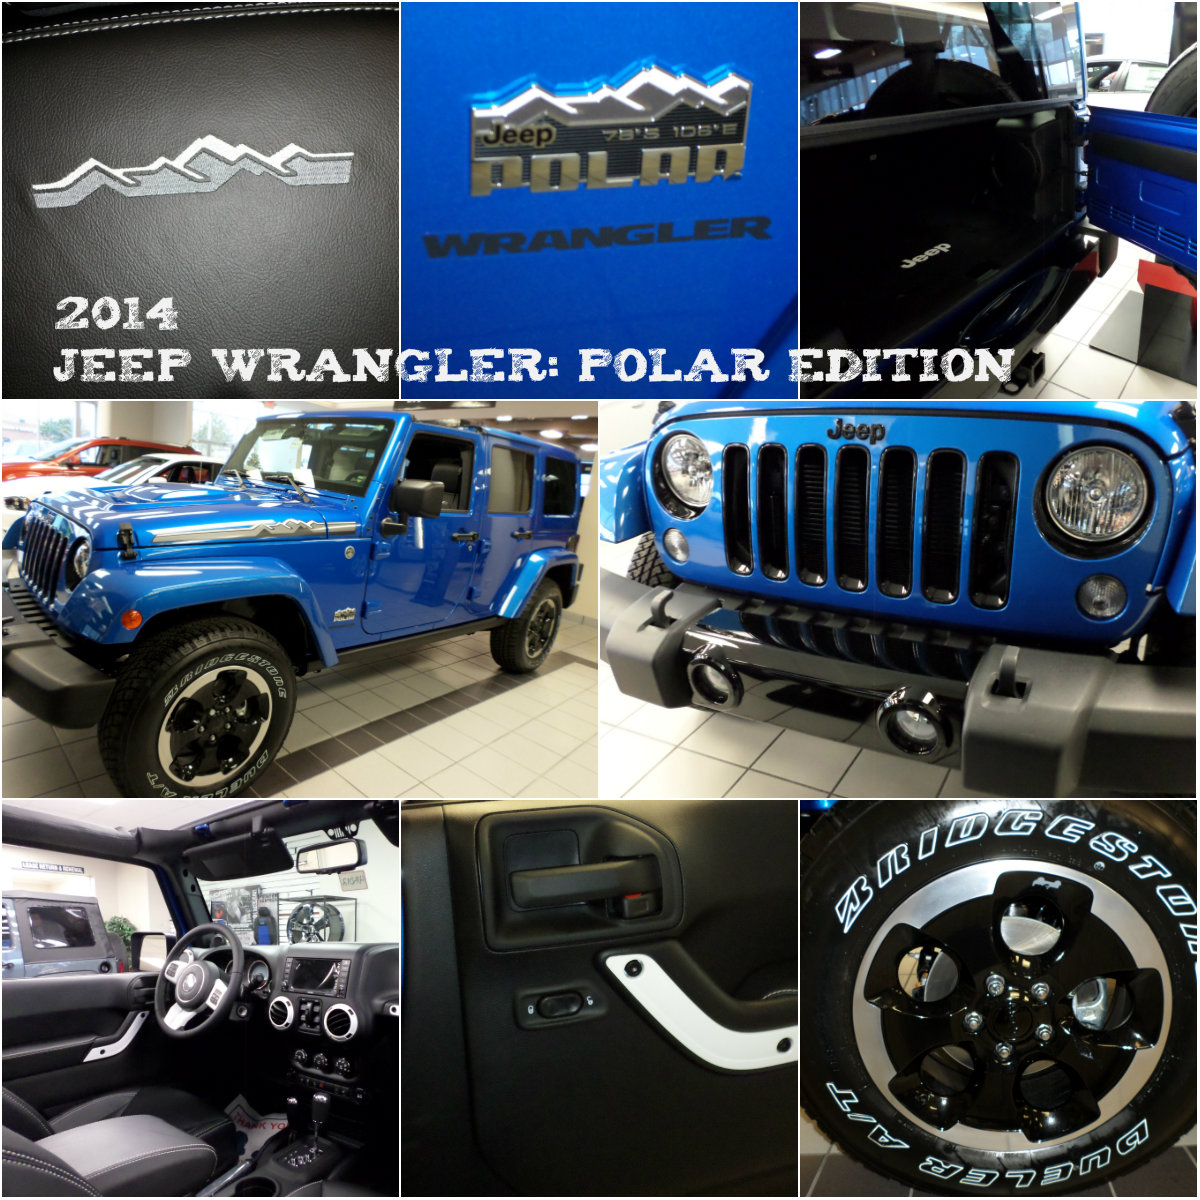 Jeep Wrangler 1995 For Sale In Charleston Oregon: You Love Winter And You Will Love The 2014 Jeep Wranger